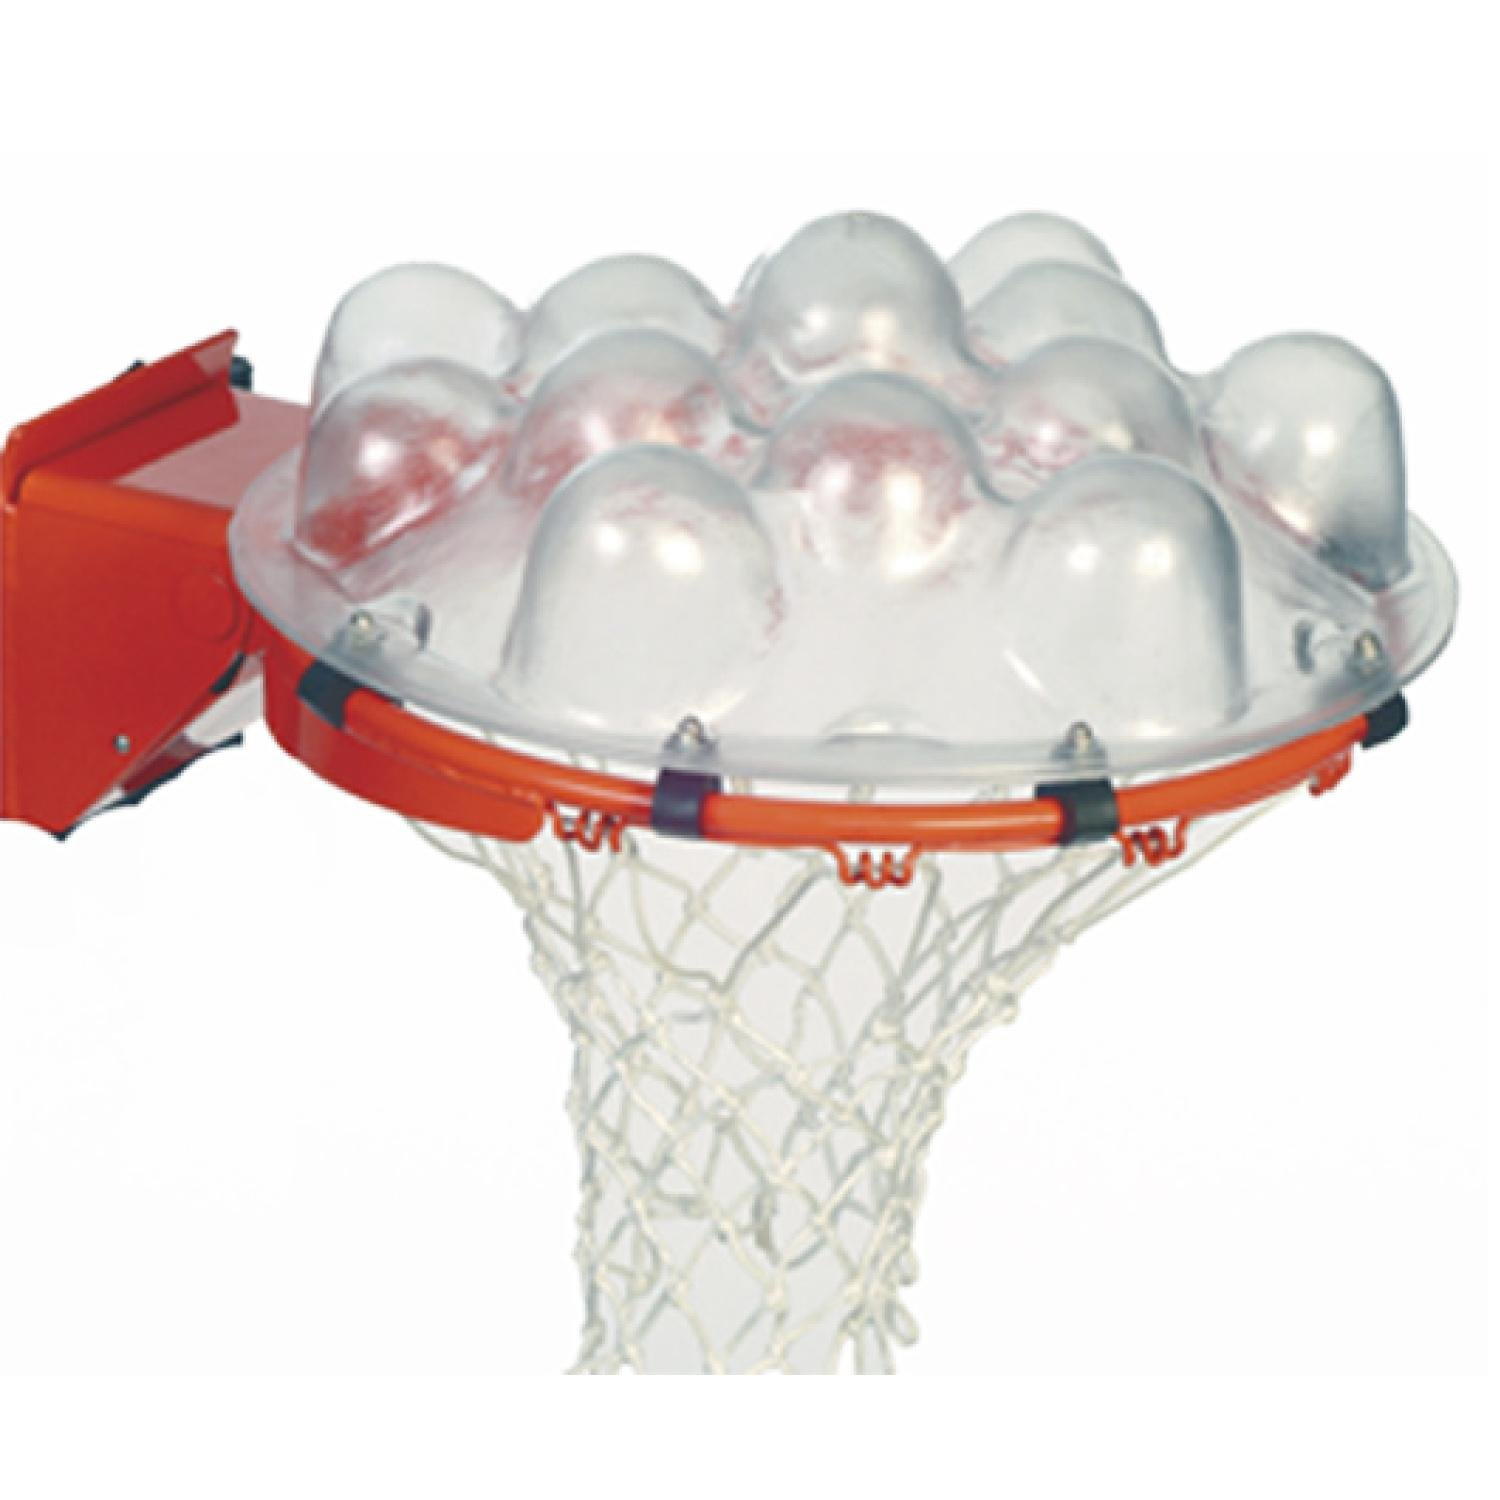 ReBound Basketball Dome by Athletic Connection